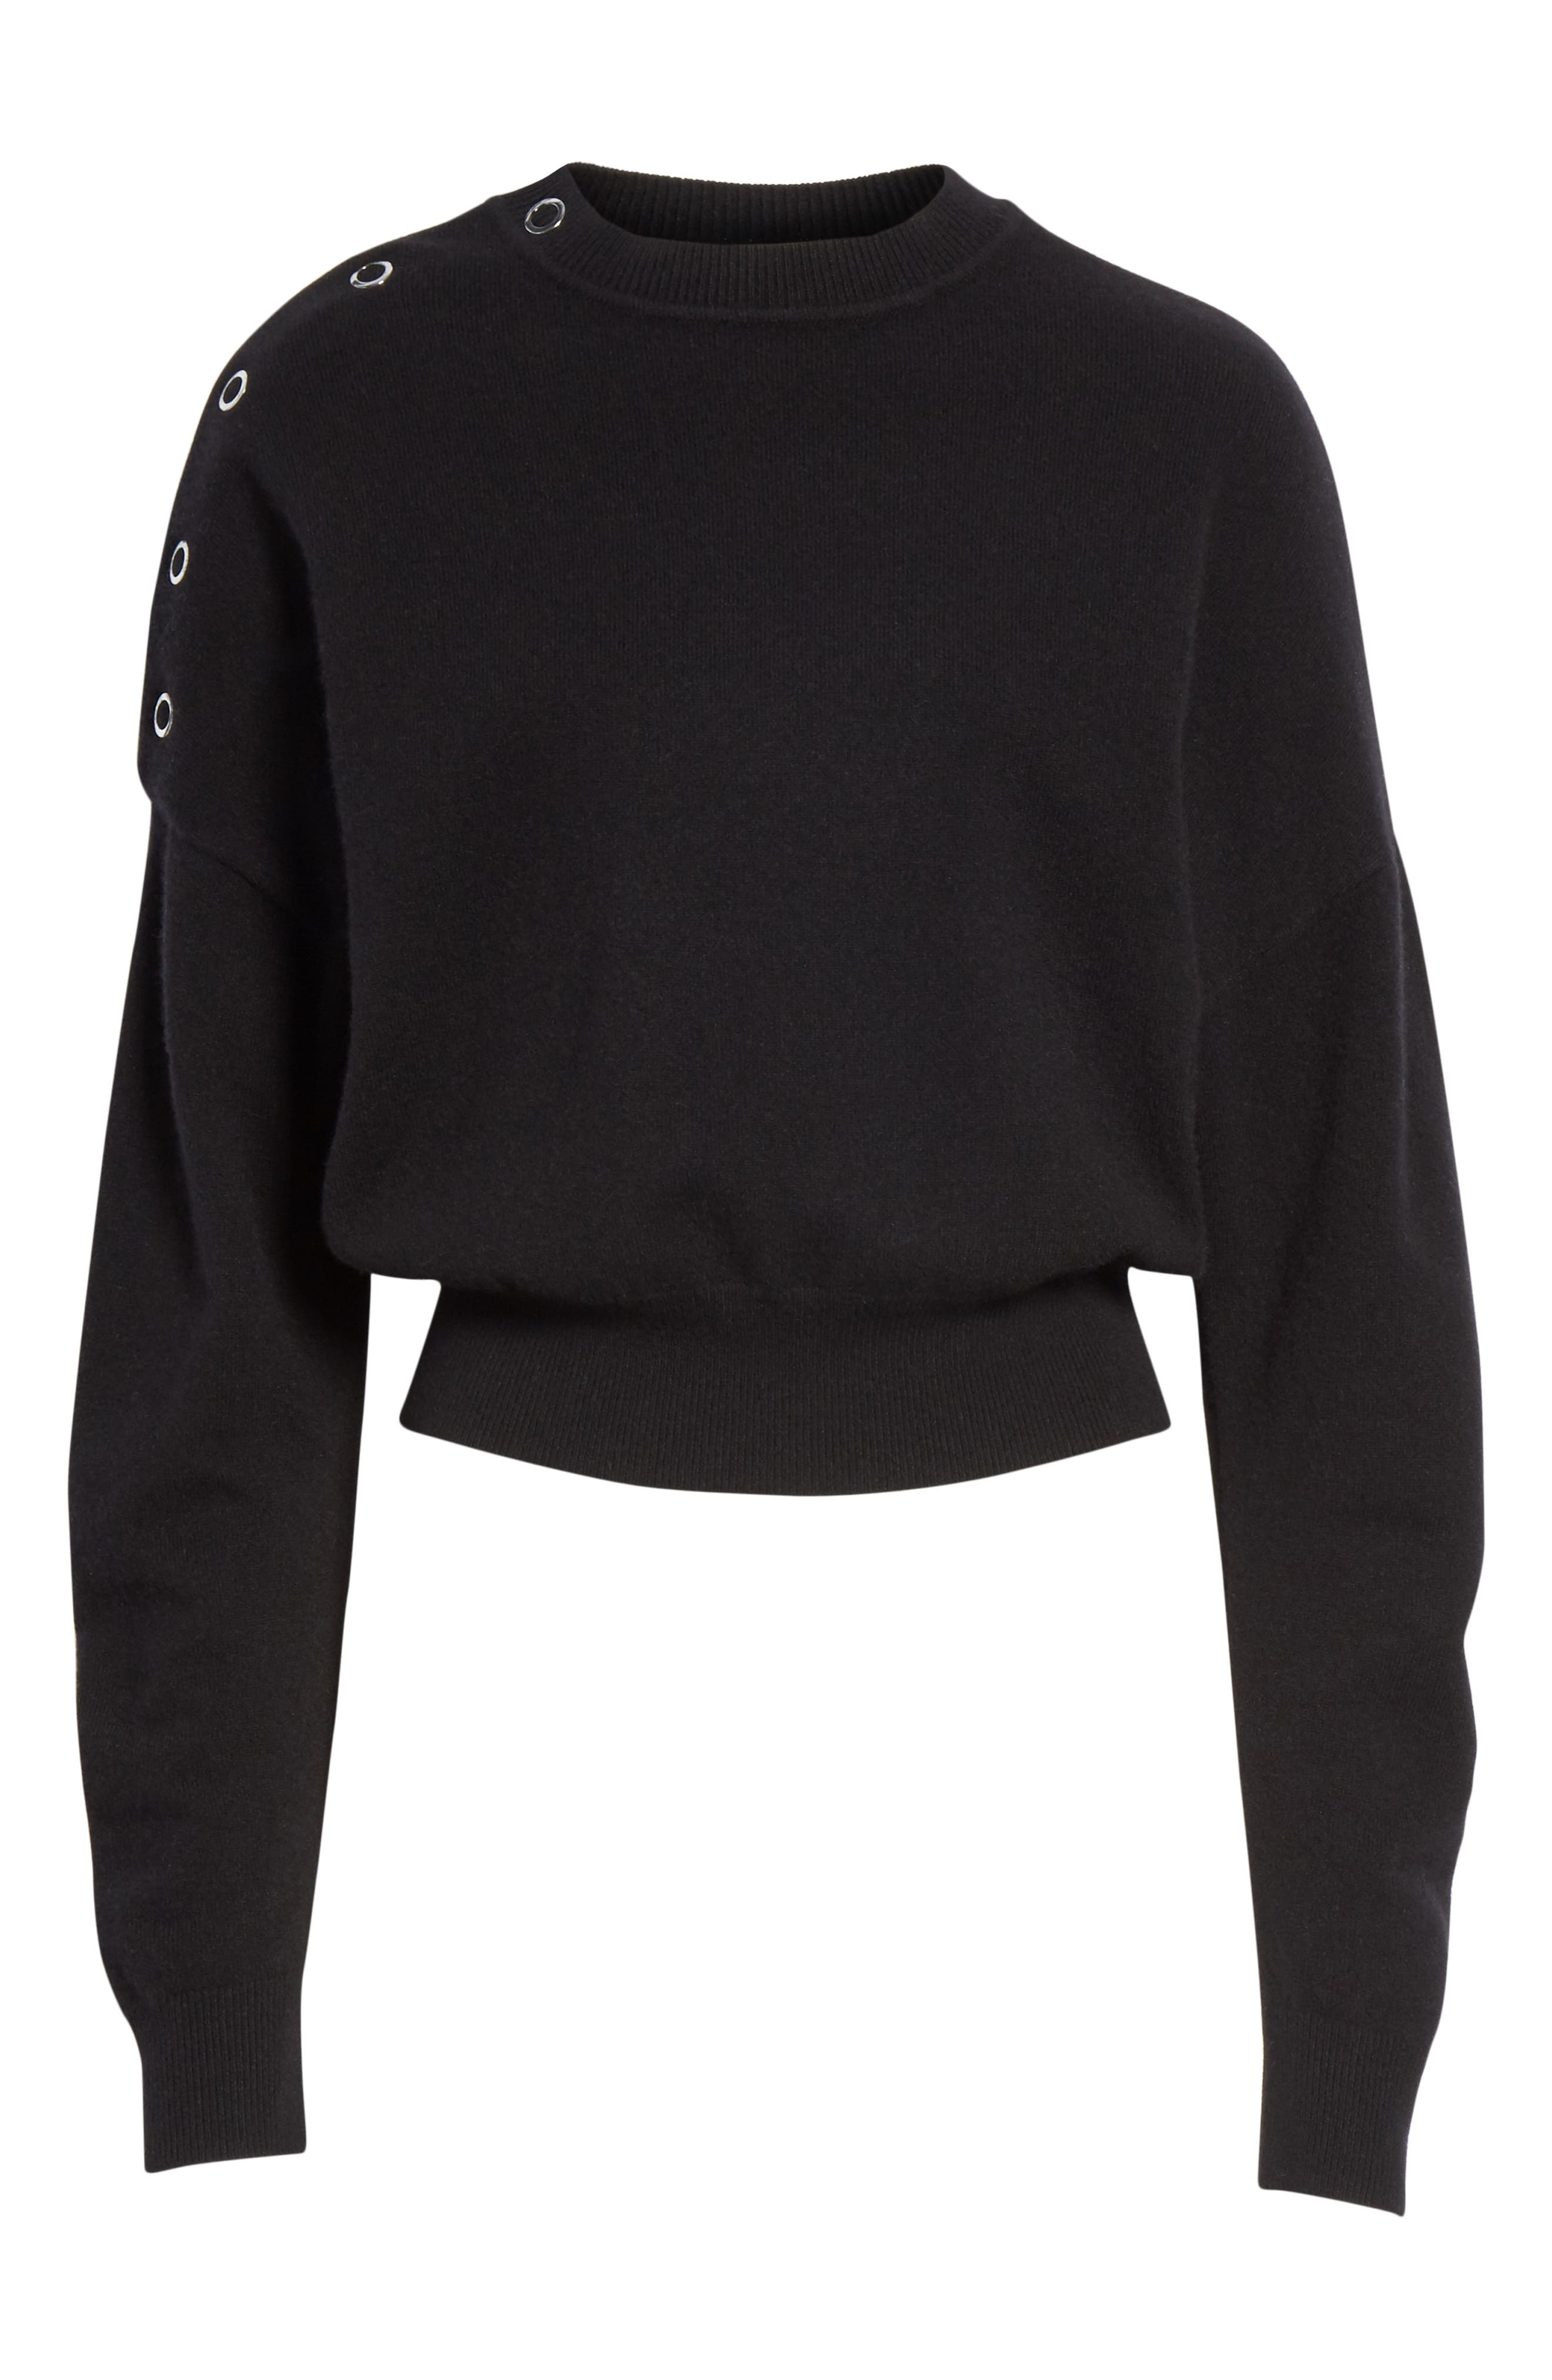 Snap Detail Cashmere Blend Sweater,                             Alternate thumbnail 6, color,                             BLACK